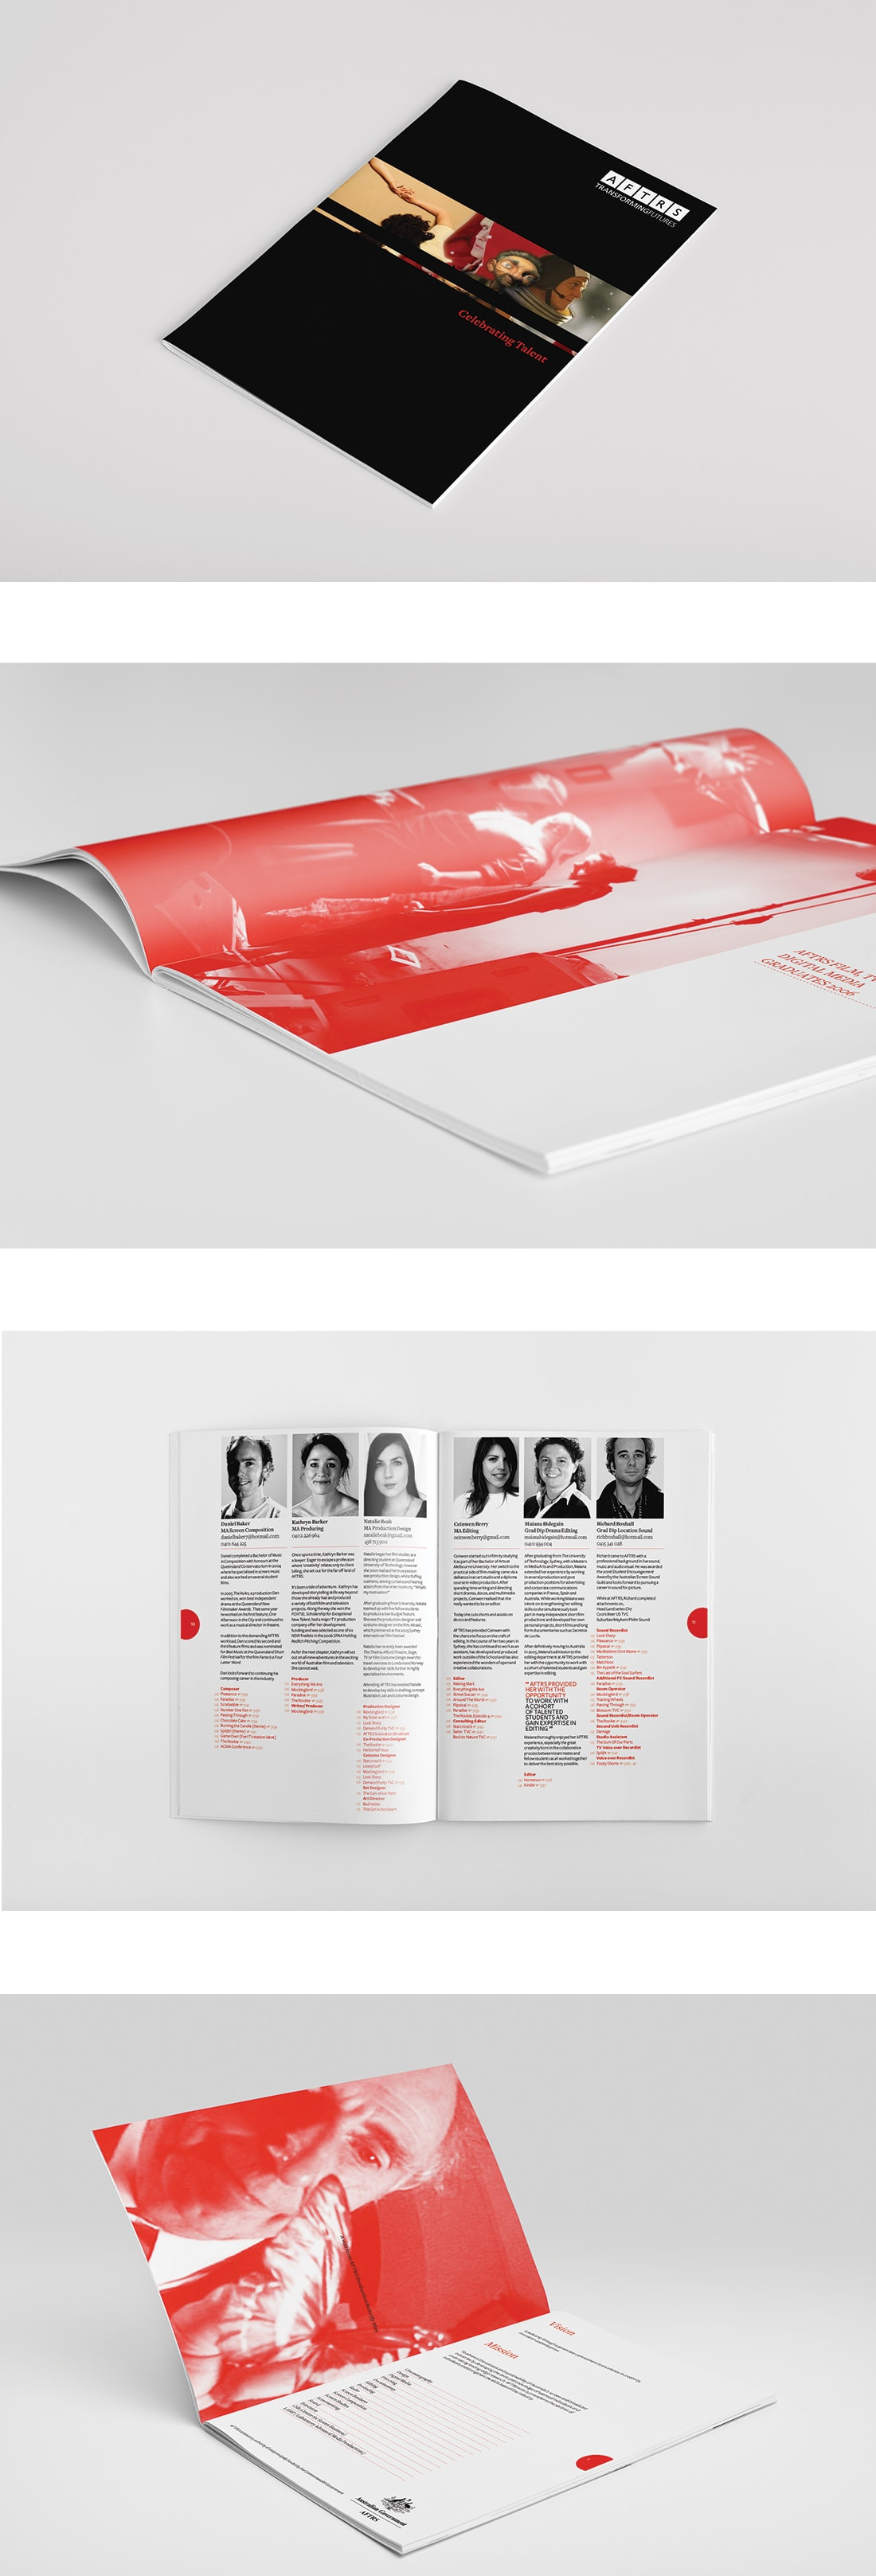 AFTRS' celebrating talent graduation book